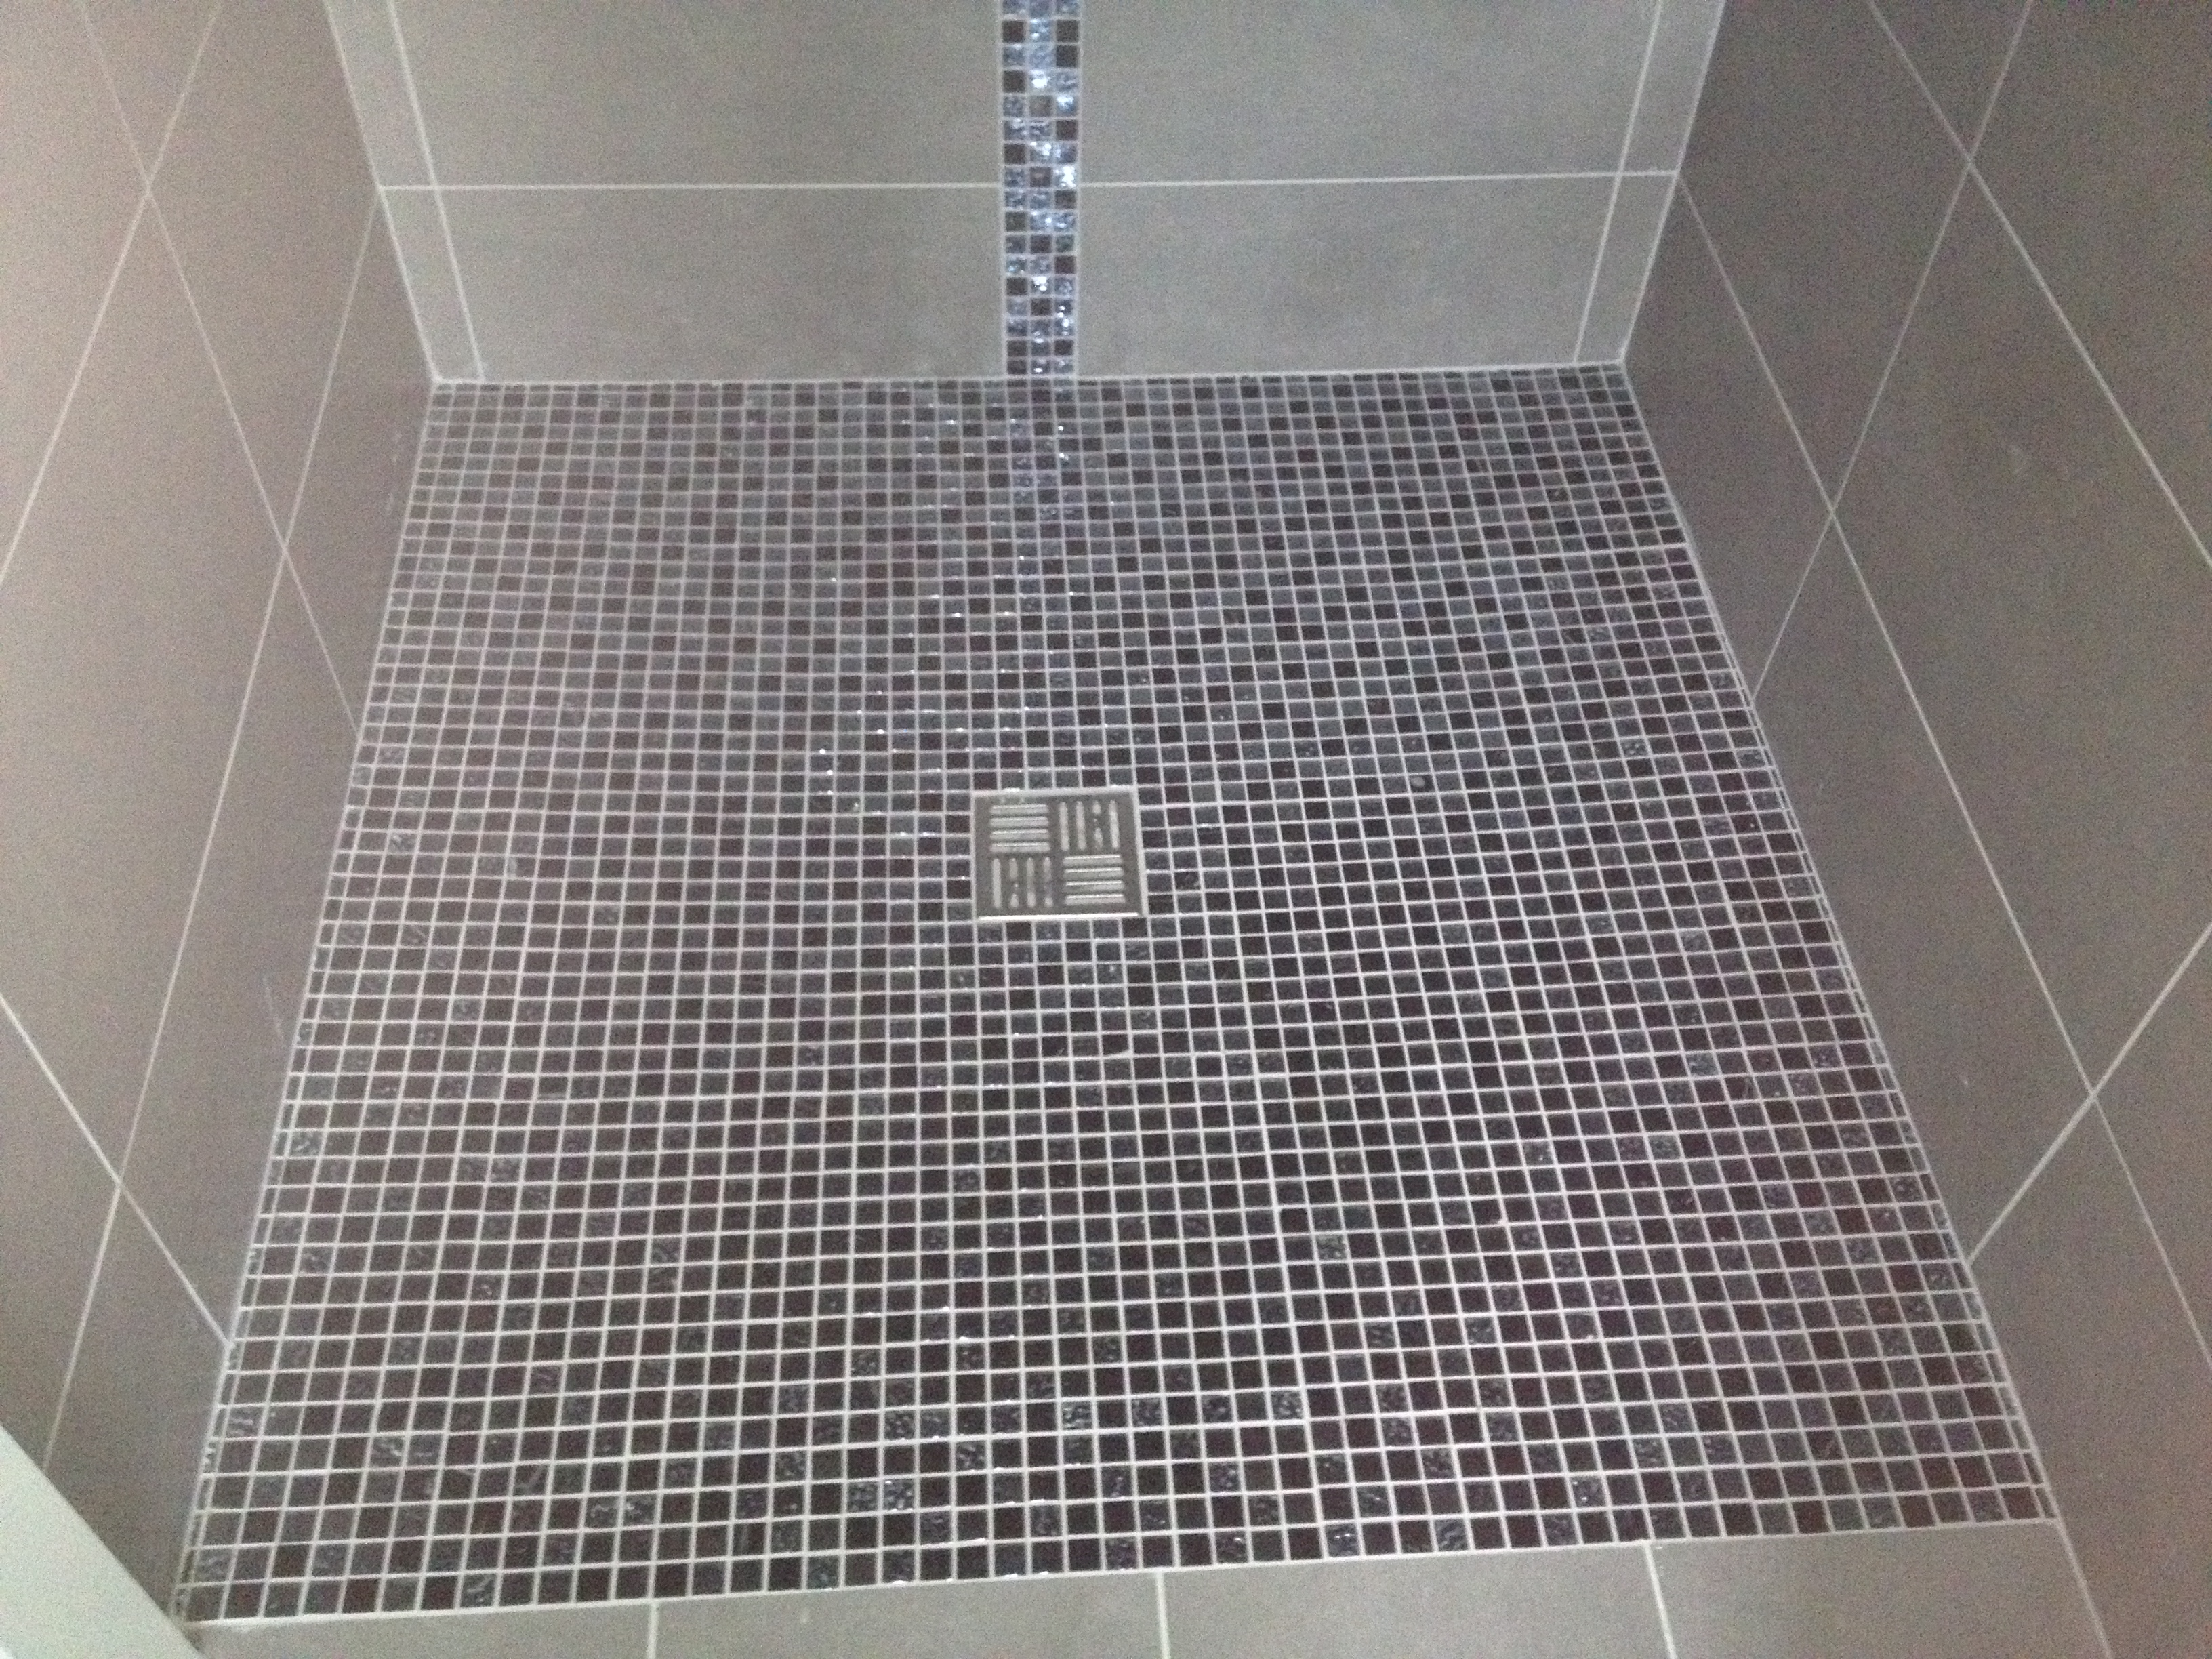 Mosaic floor tiles wet room image collections home flooring design portfolio we offer high quality tiling at affordable pricing including porcelain to mosaic tiling marialoaizafo image doublecrazyfo Image collections